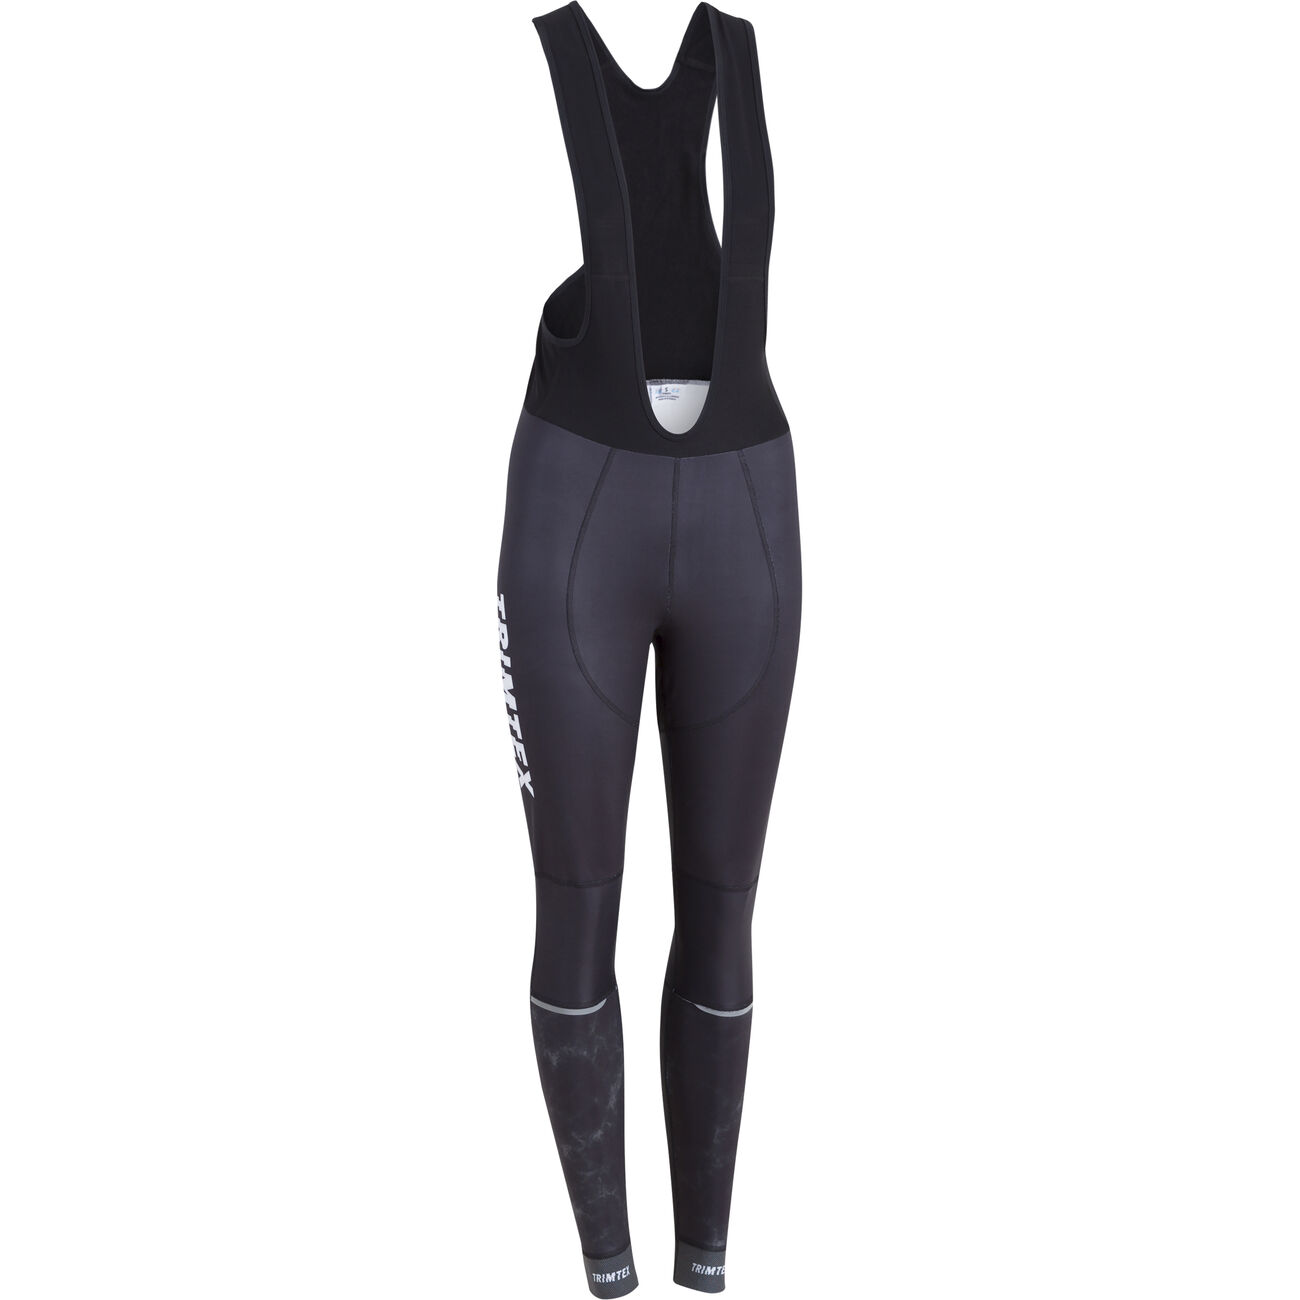 Elite Thermo cycling tights women's